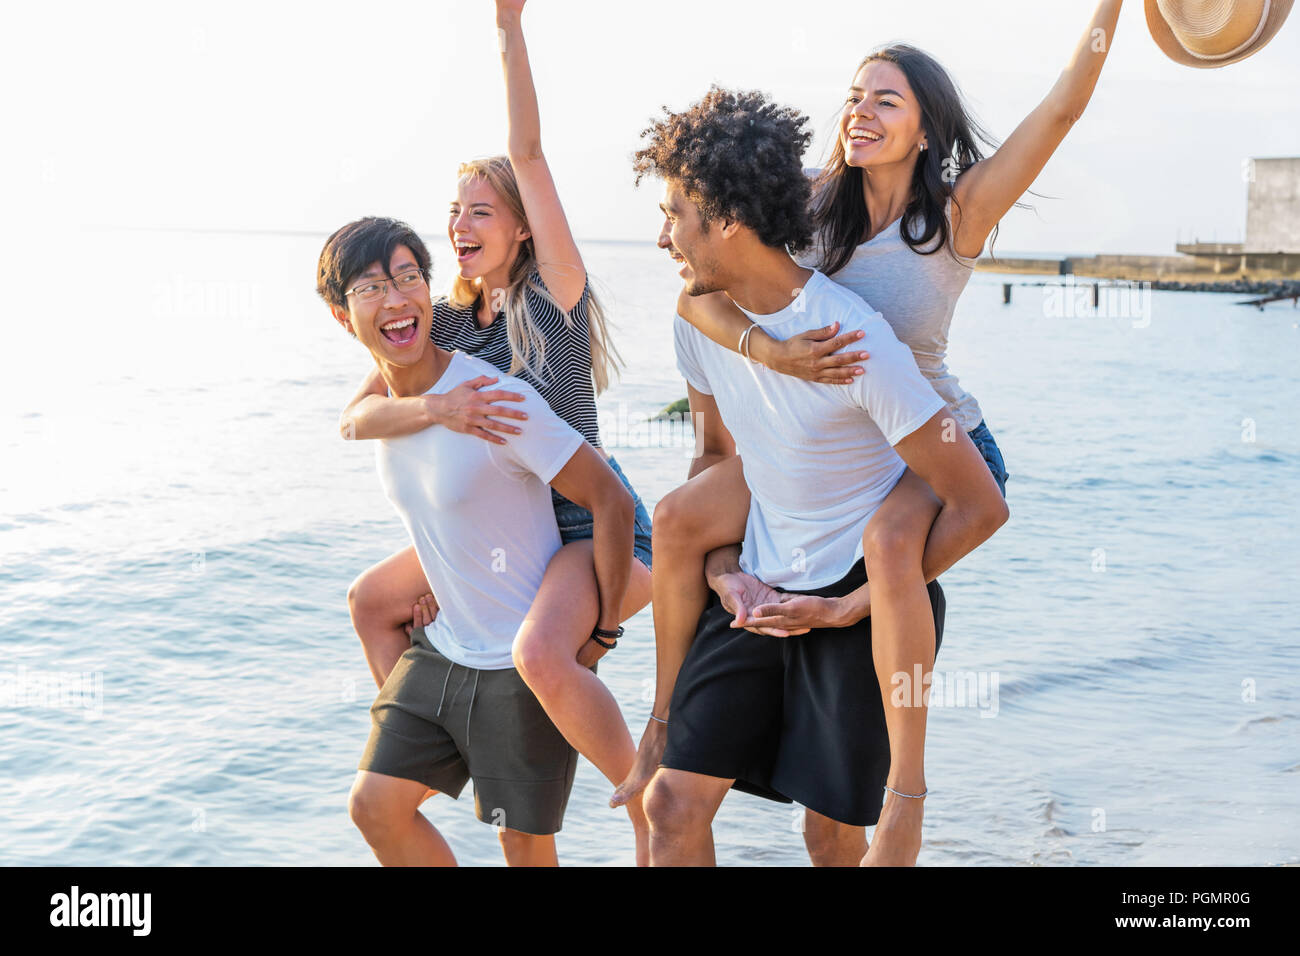 Group of friends walking along the beach, with men giving piggyback ride to girlfriends. Happy young friends enjoying a day at beach - Stock Image